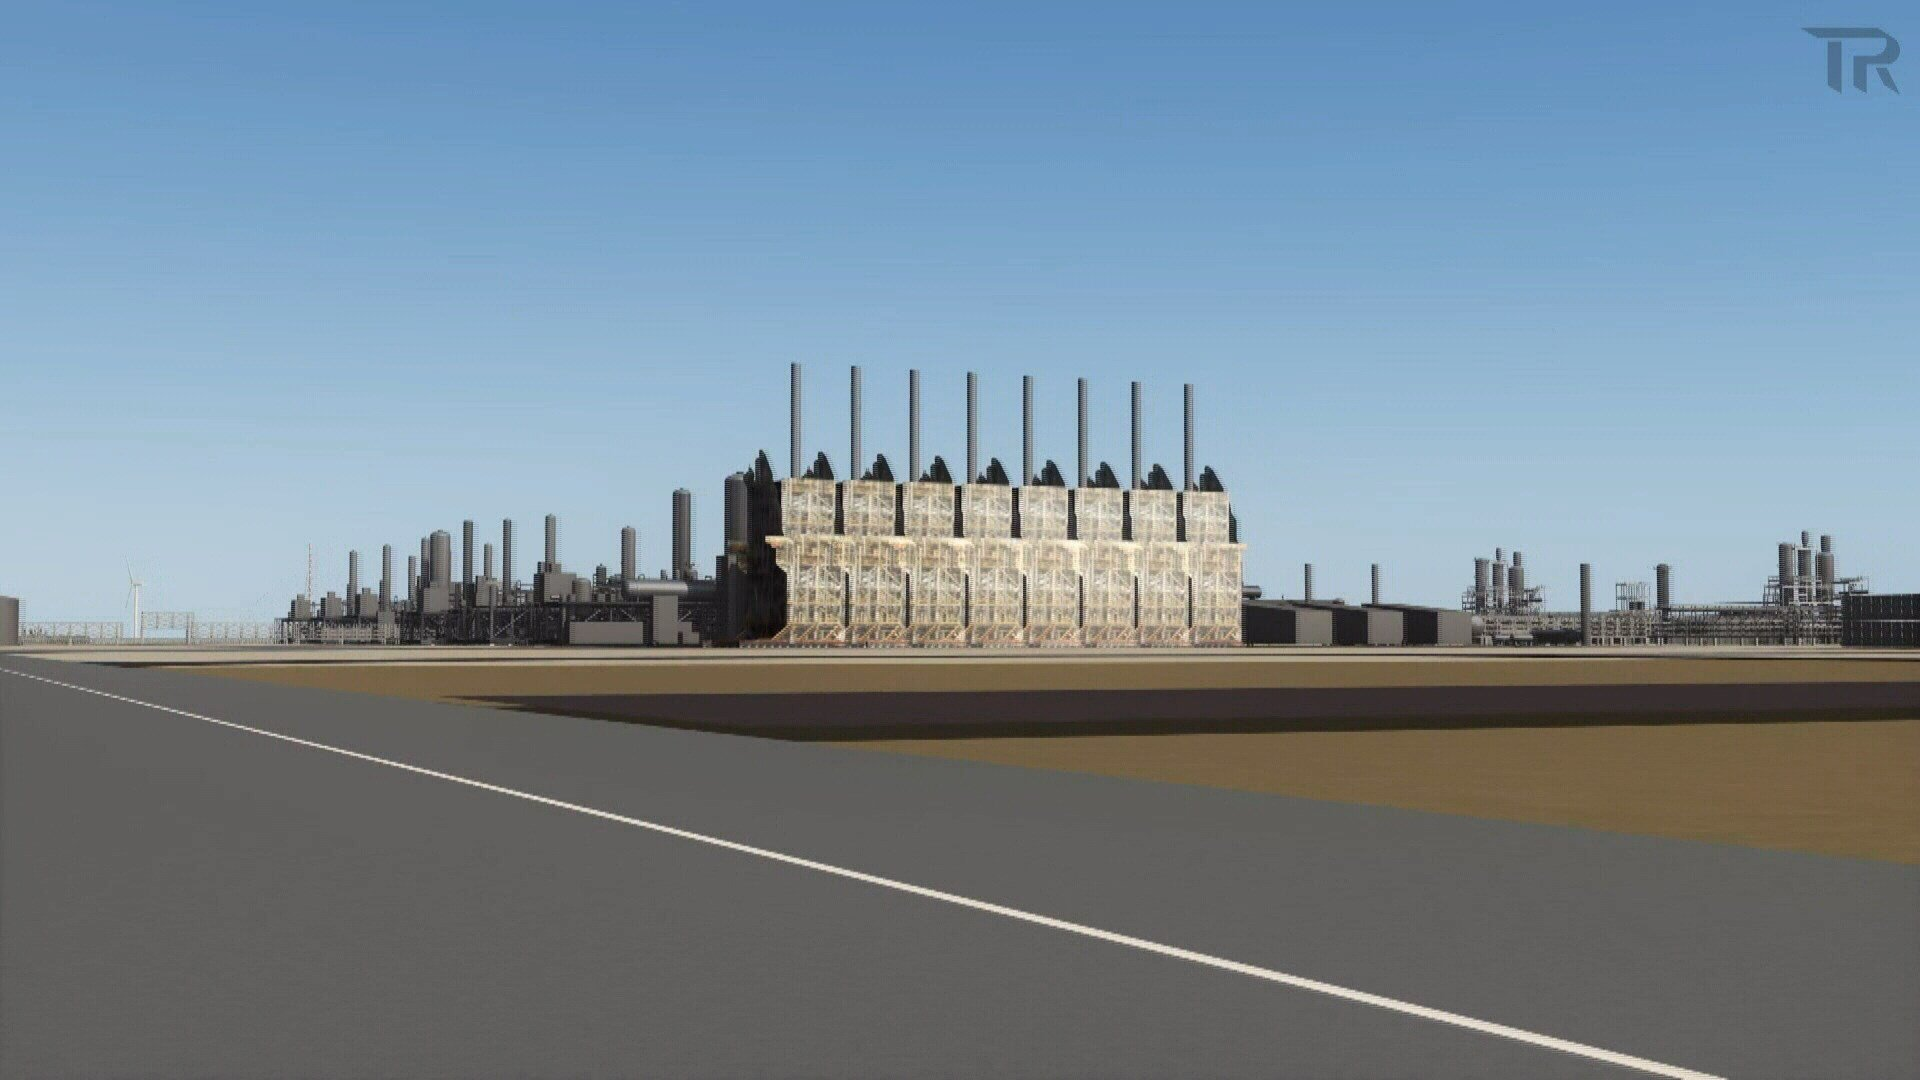 A look at how the proposed ExxonMobil plant might look.